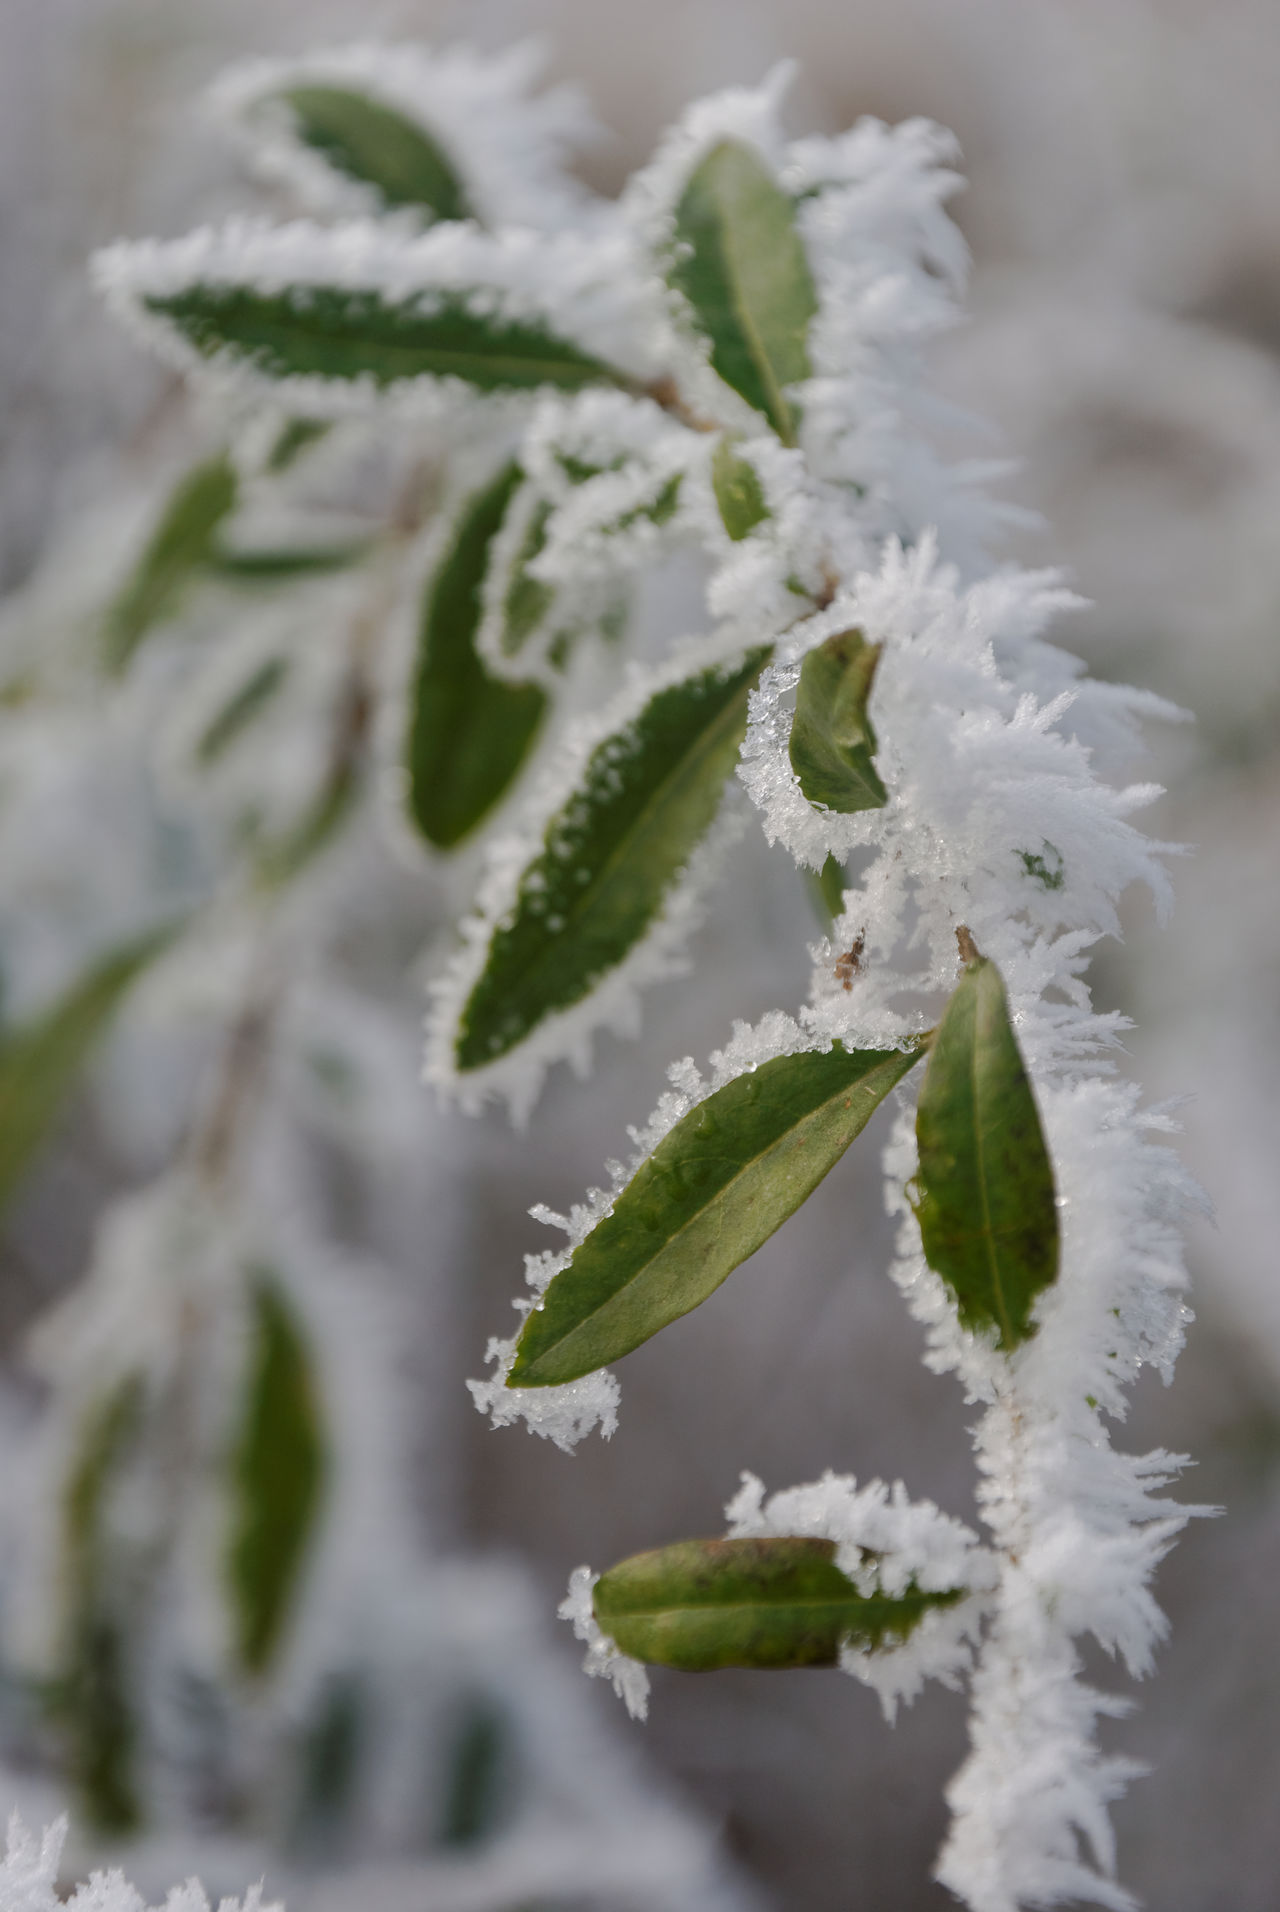 When winter comes to early Autumn Autumn Leaves Beauty In Nature Changing Seasons Close Up Close-up Freezing Frosty Leaves Frosty Mornings Frozen Nature Ice Ice Age Outdoors Stopping Time White Frost Winter Wintertime